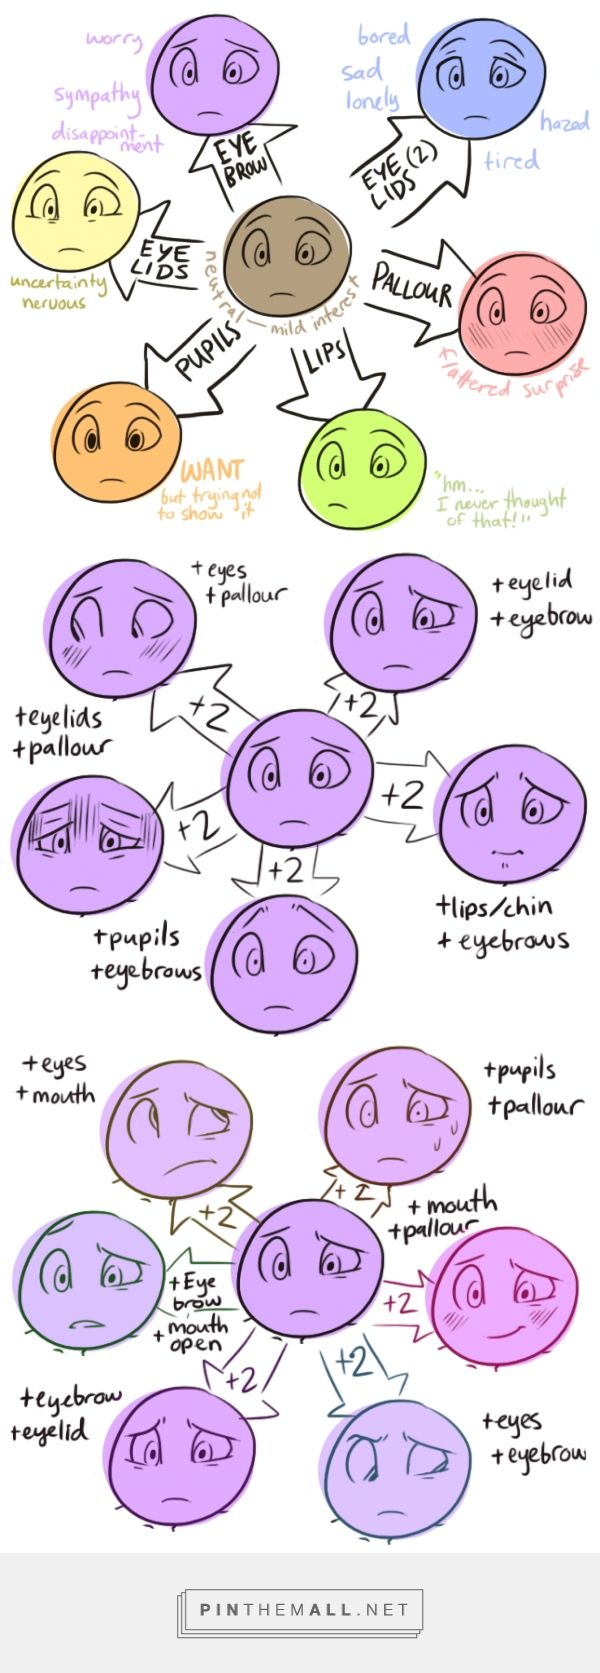 How to, stepbystep, make expressions mean different